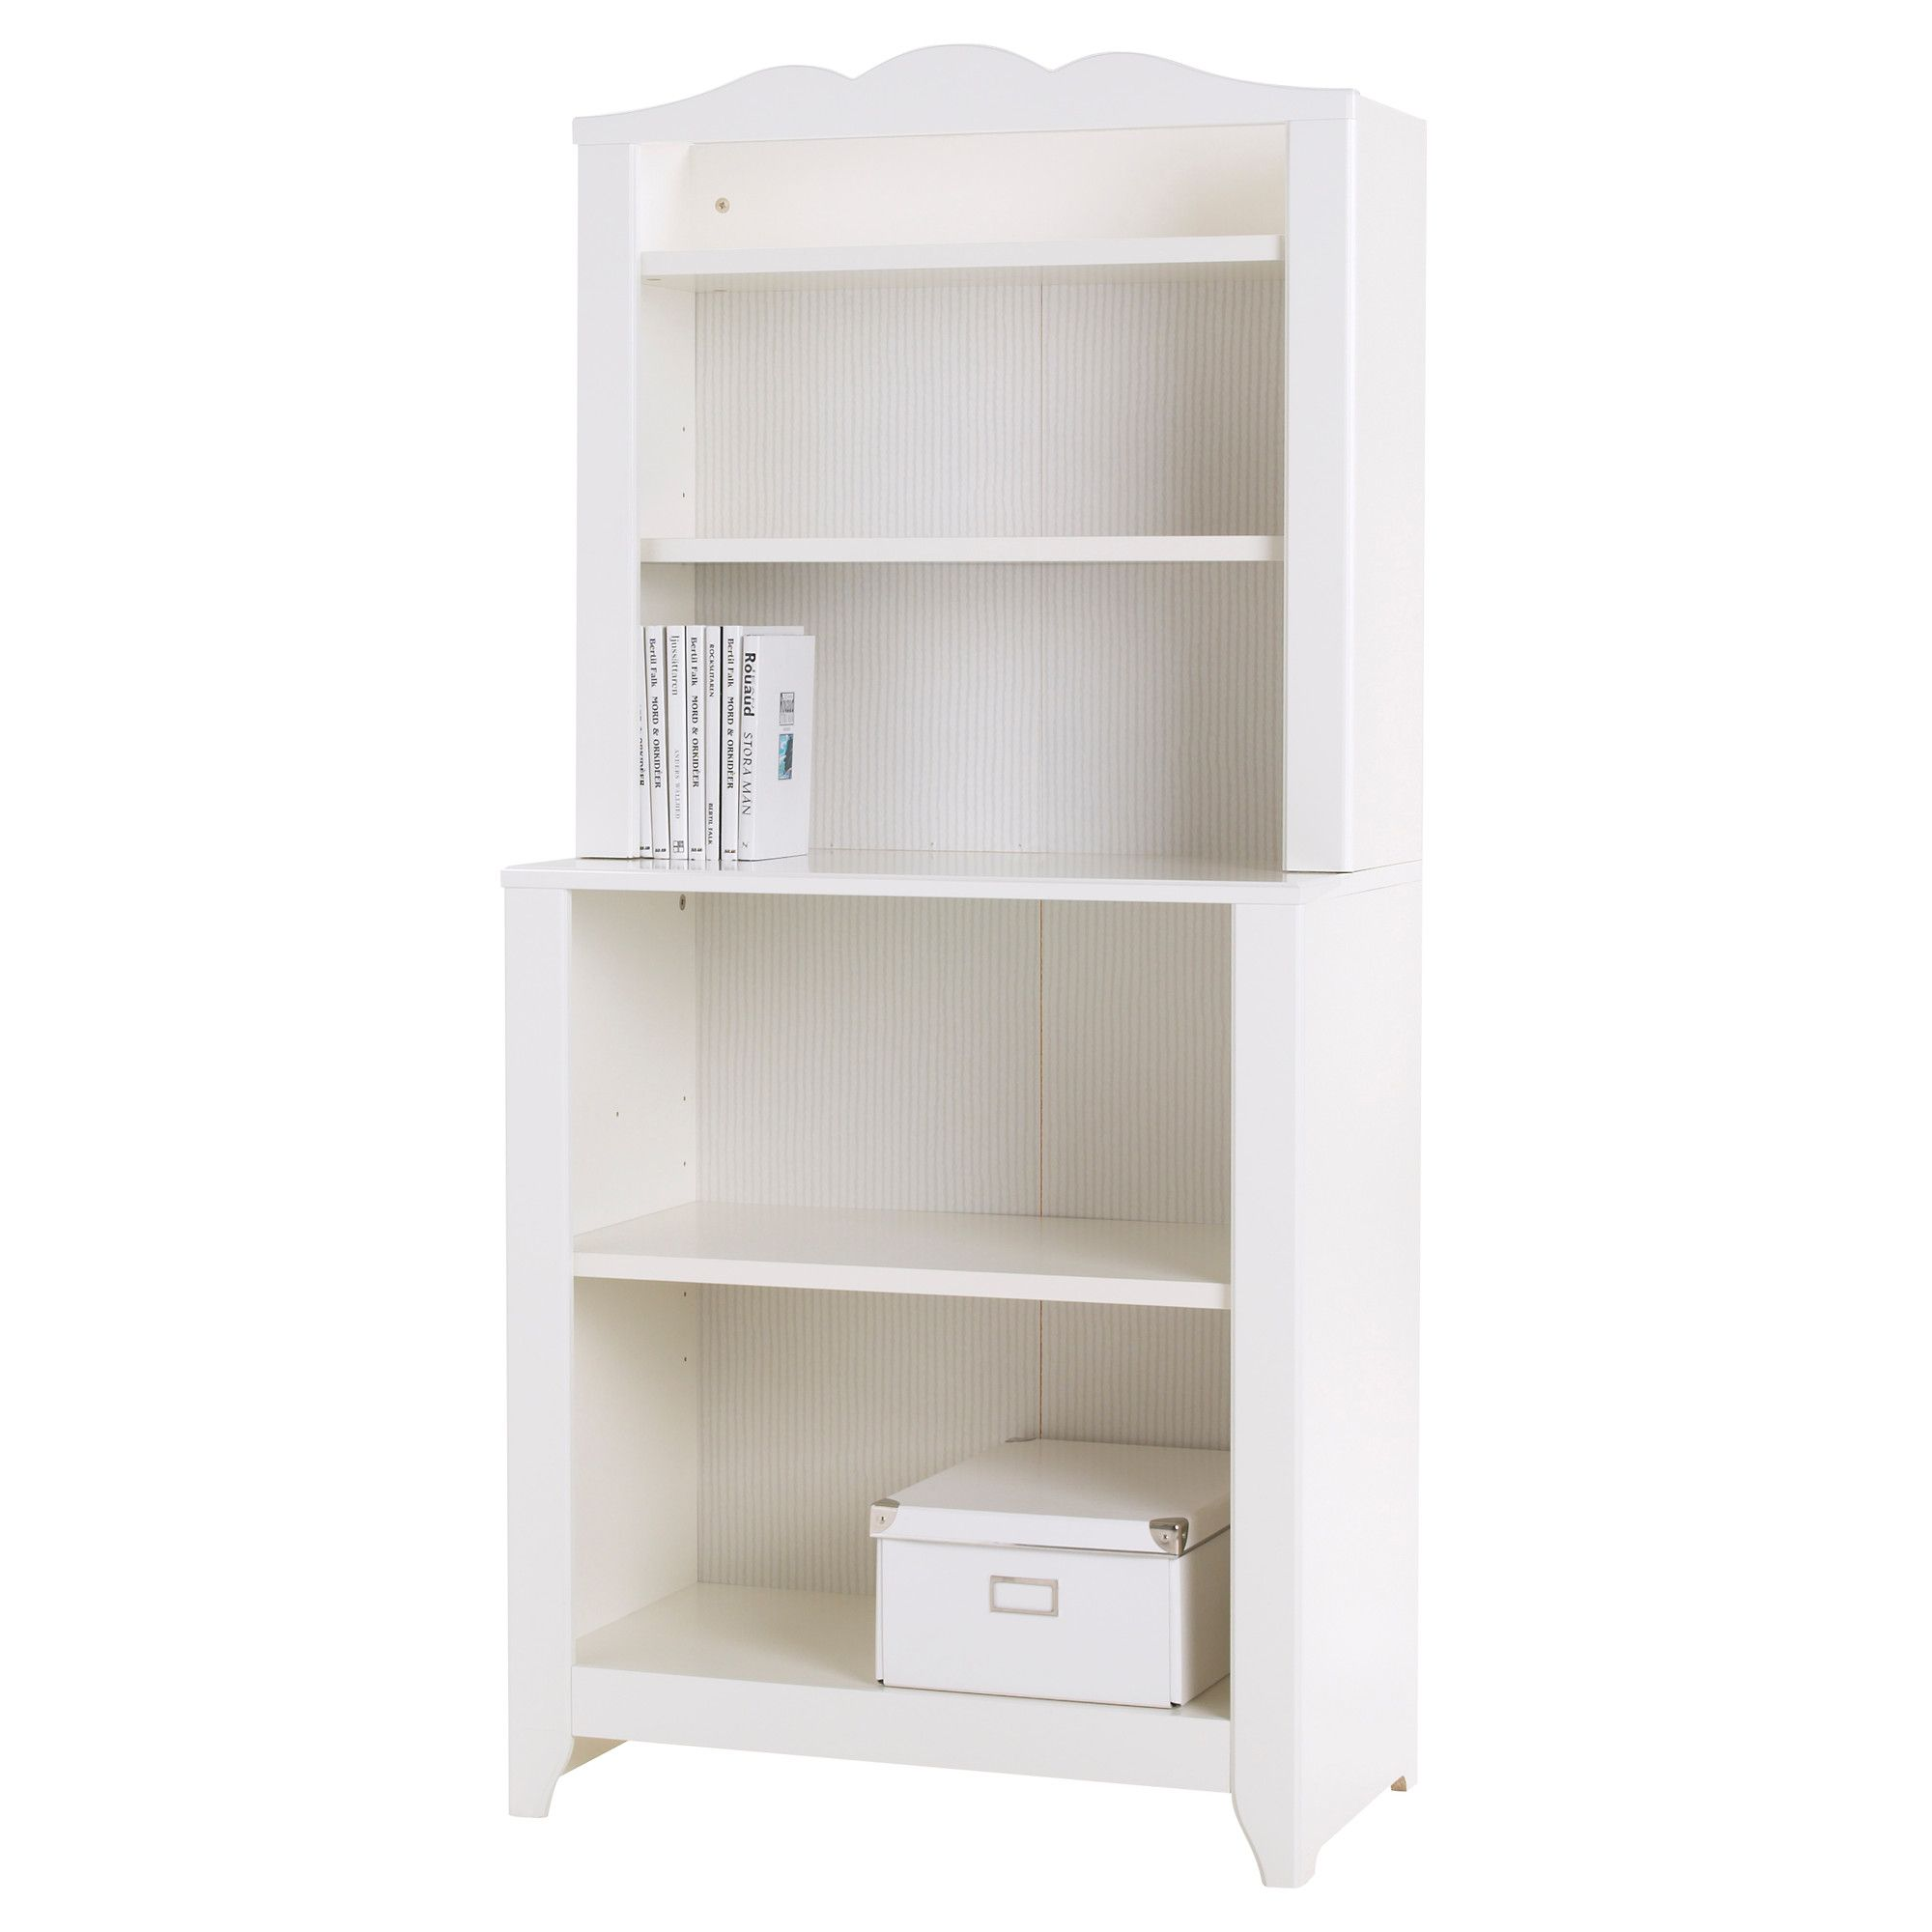 Etagere Rose Ikea Hensvik Cabinet With Shelf Unit Ikea With Changer Shelf Add On